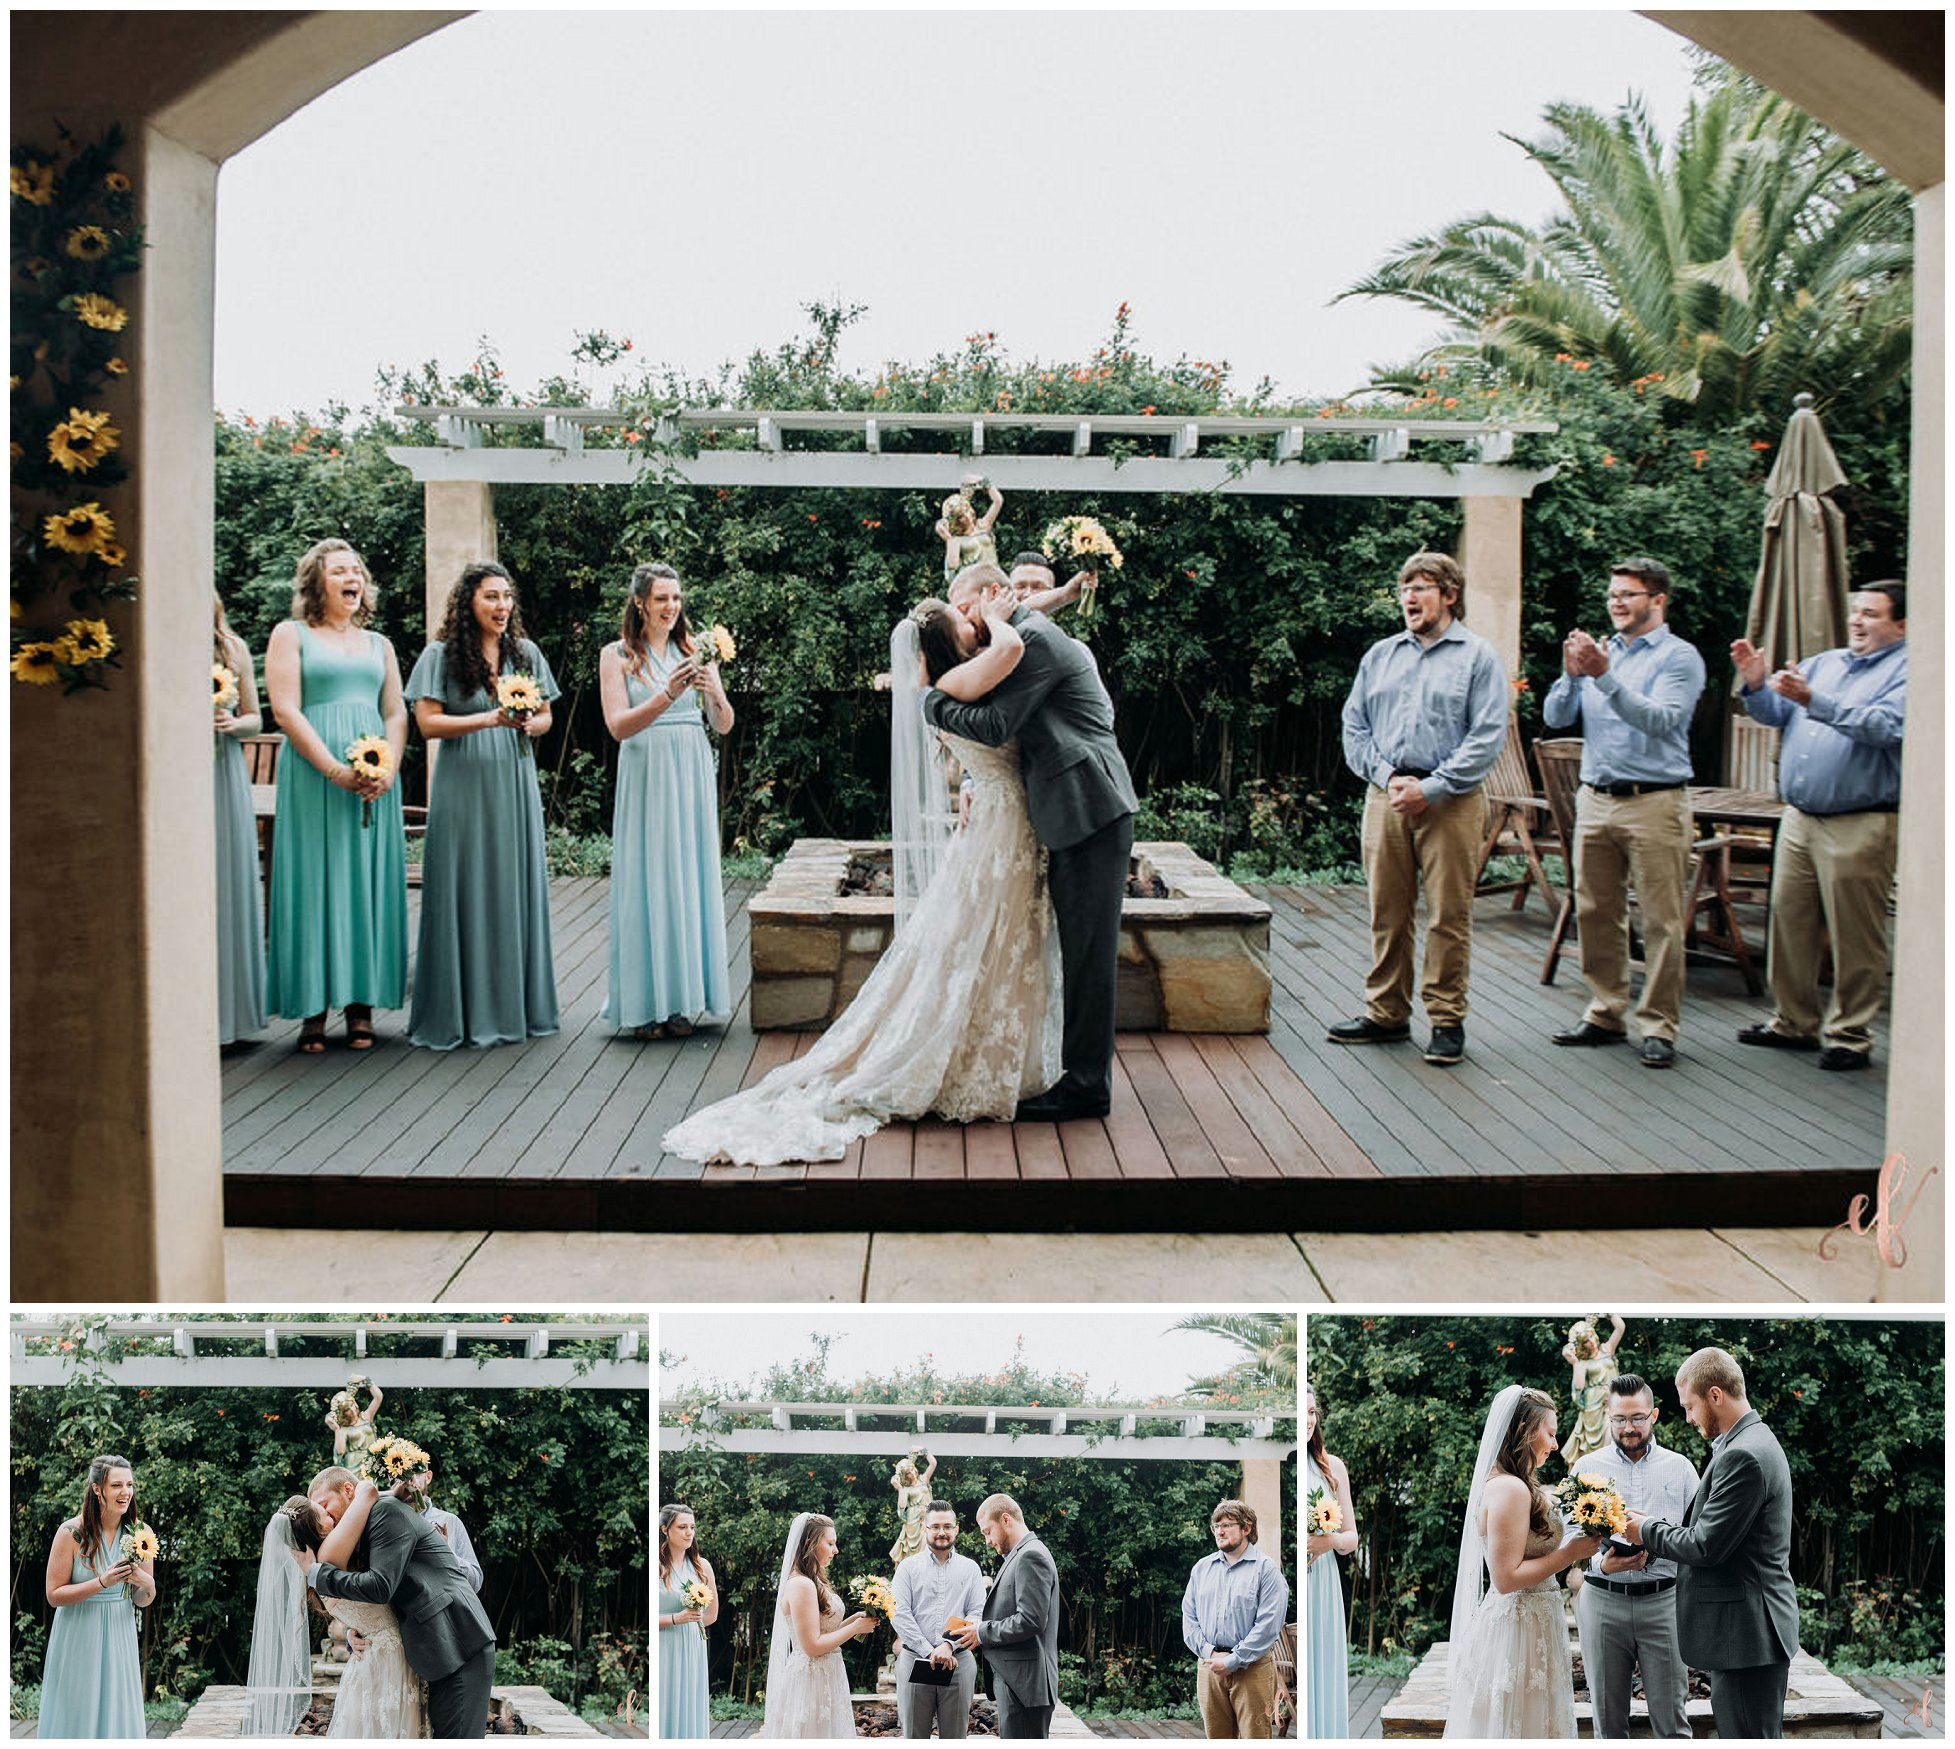 San Diego Wedding Photography in Backyard | Jessica + Jordan